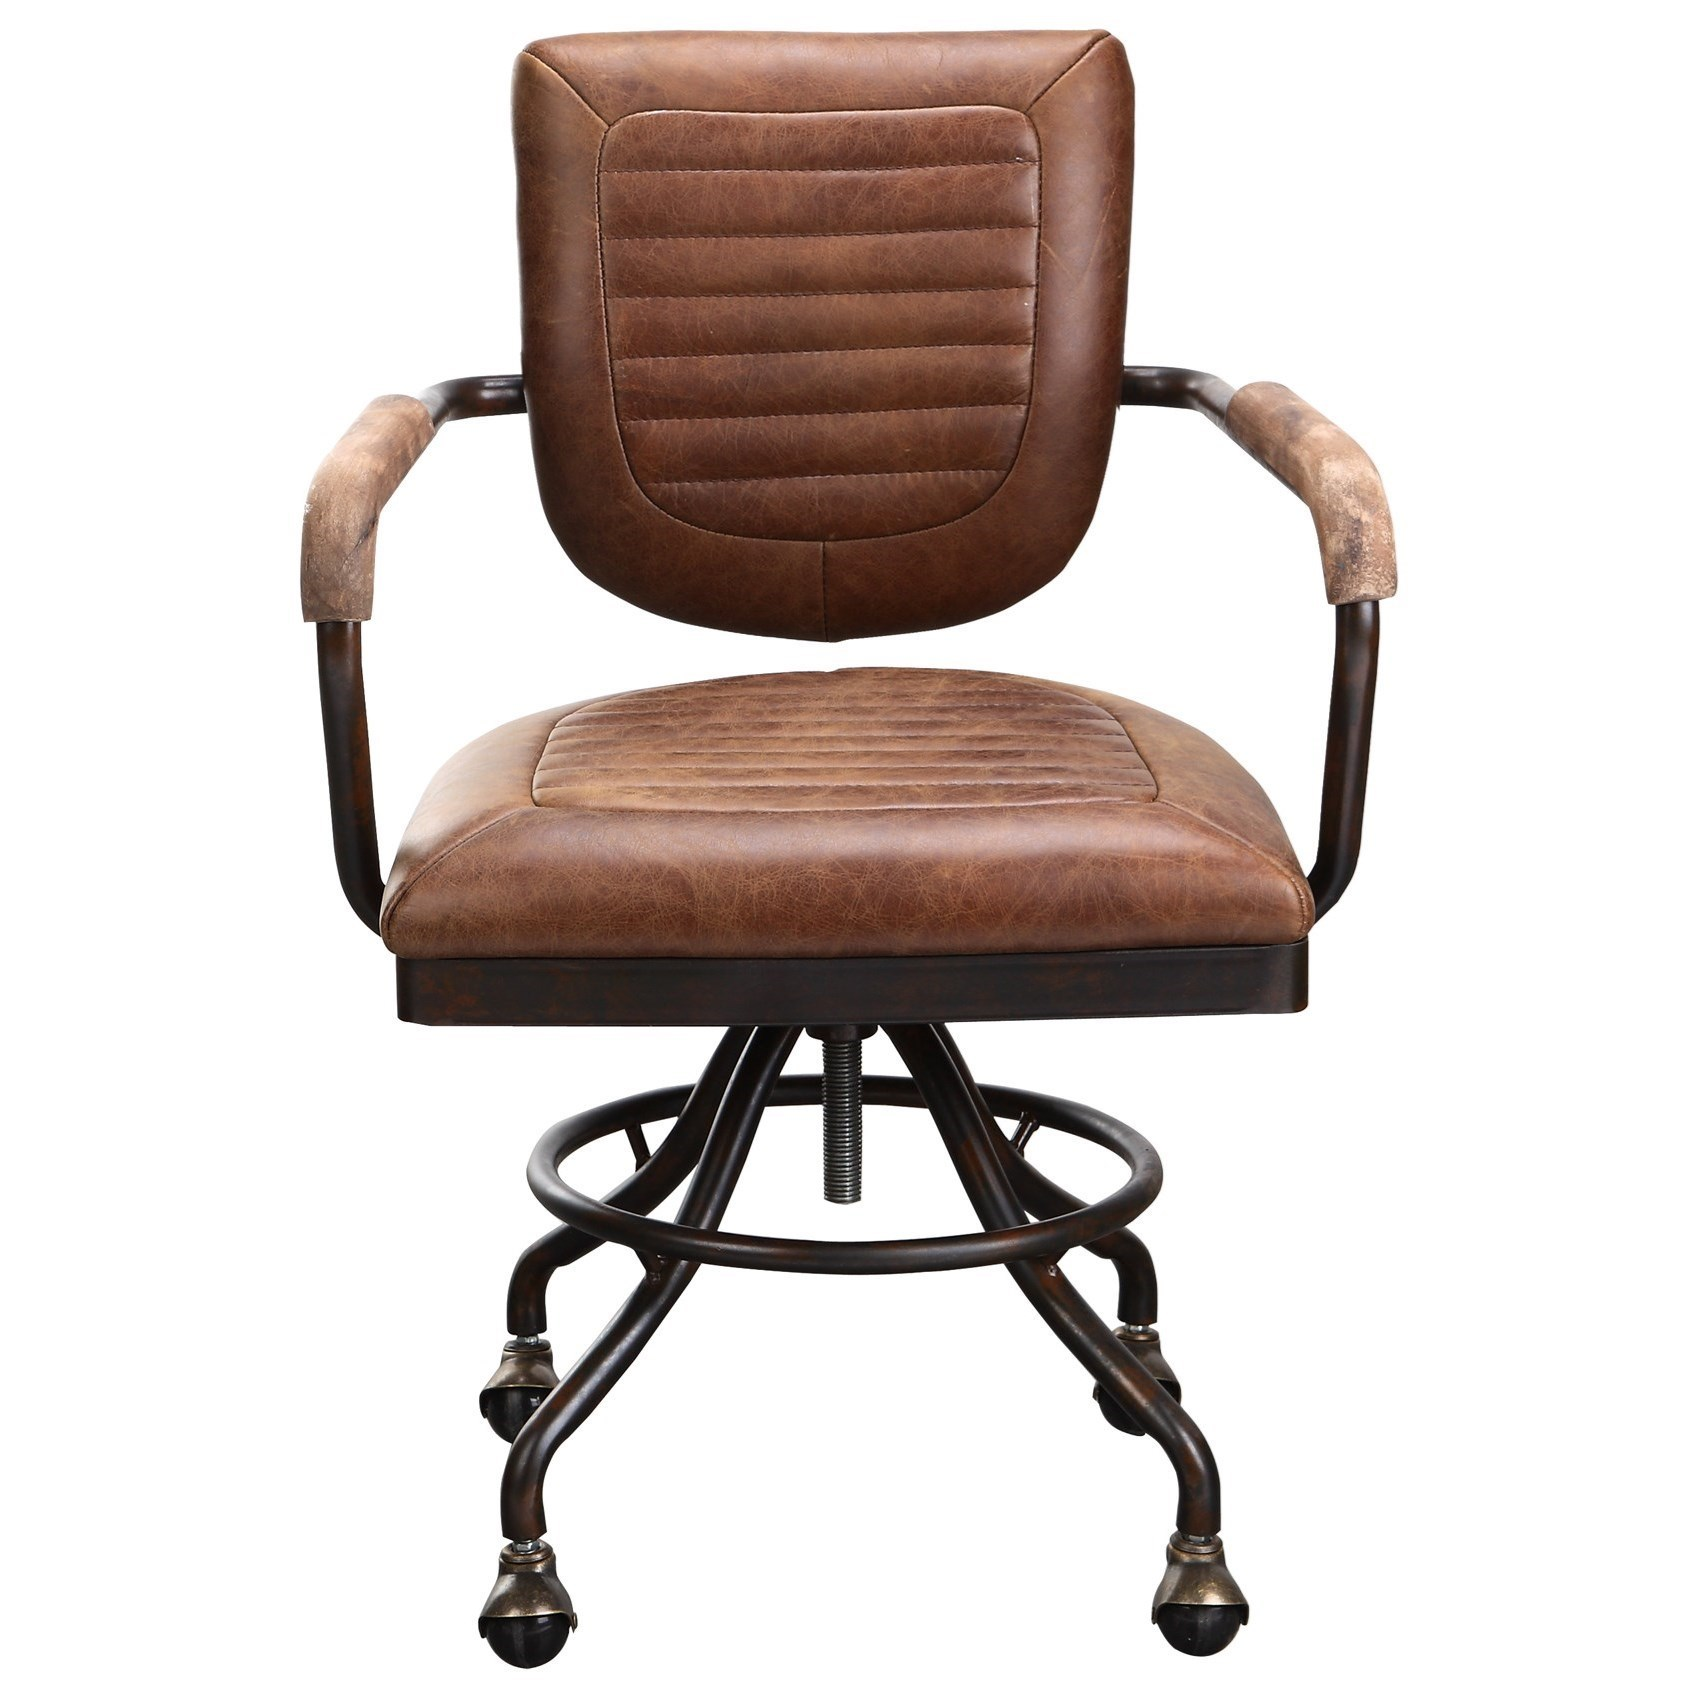 Home Office Desk Chairs Foster Industrial Leather Desk Chair By Moe S Home Collection At Stoney Creek Furniture